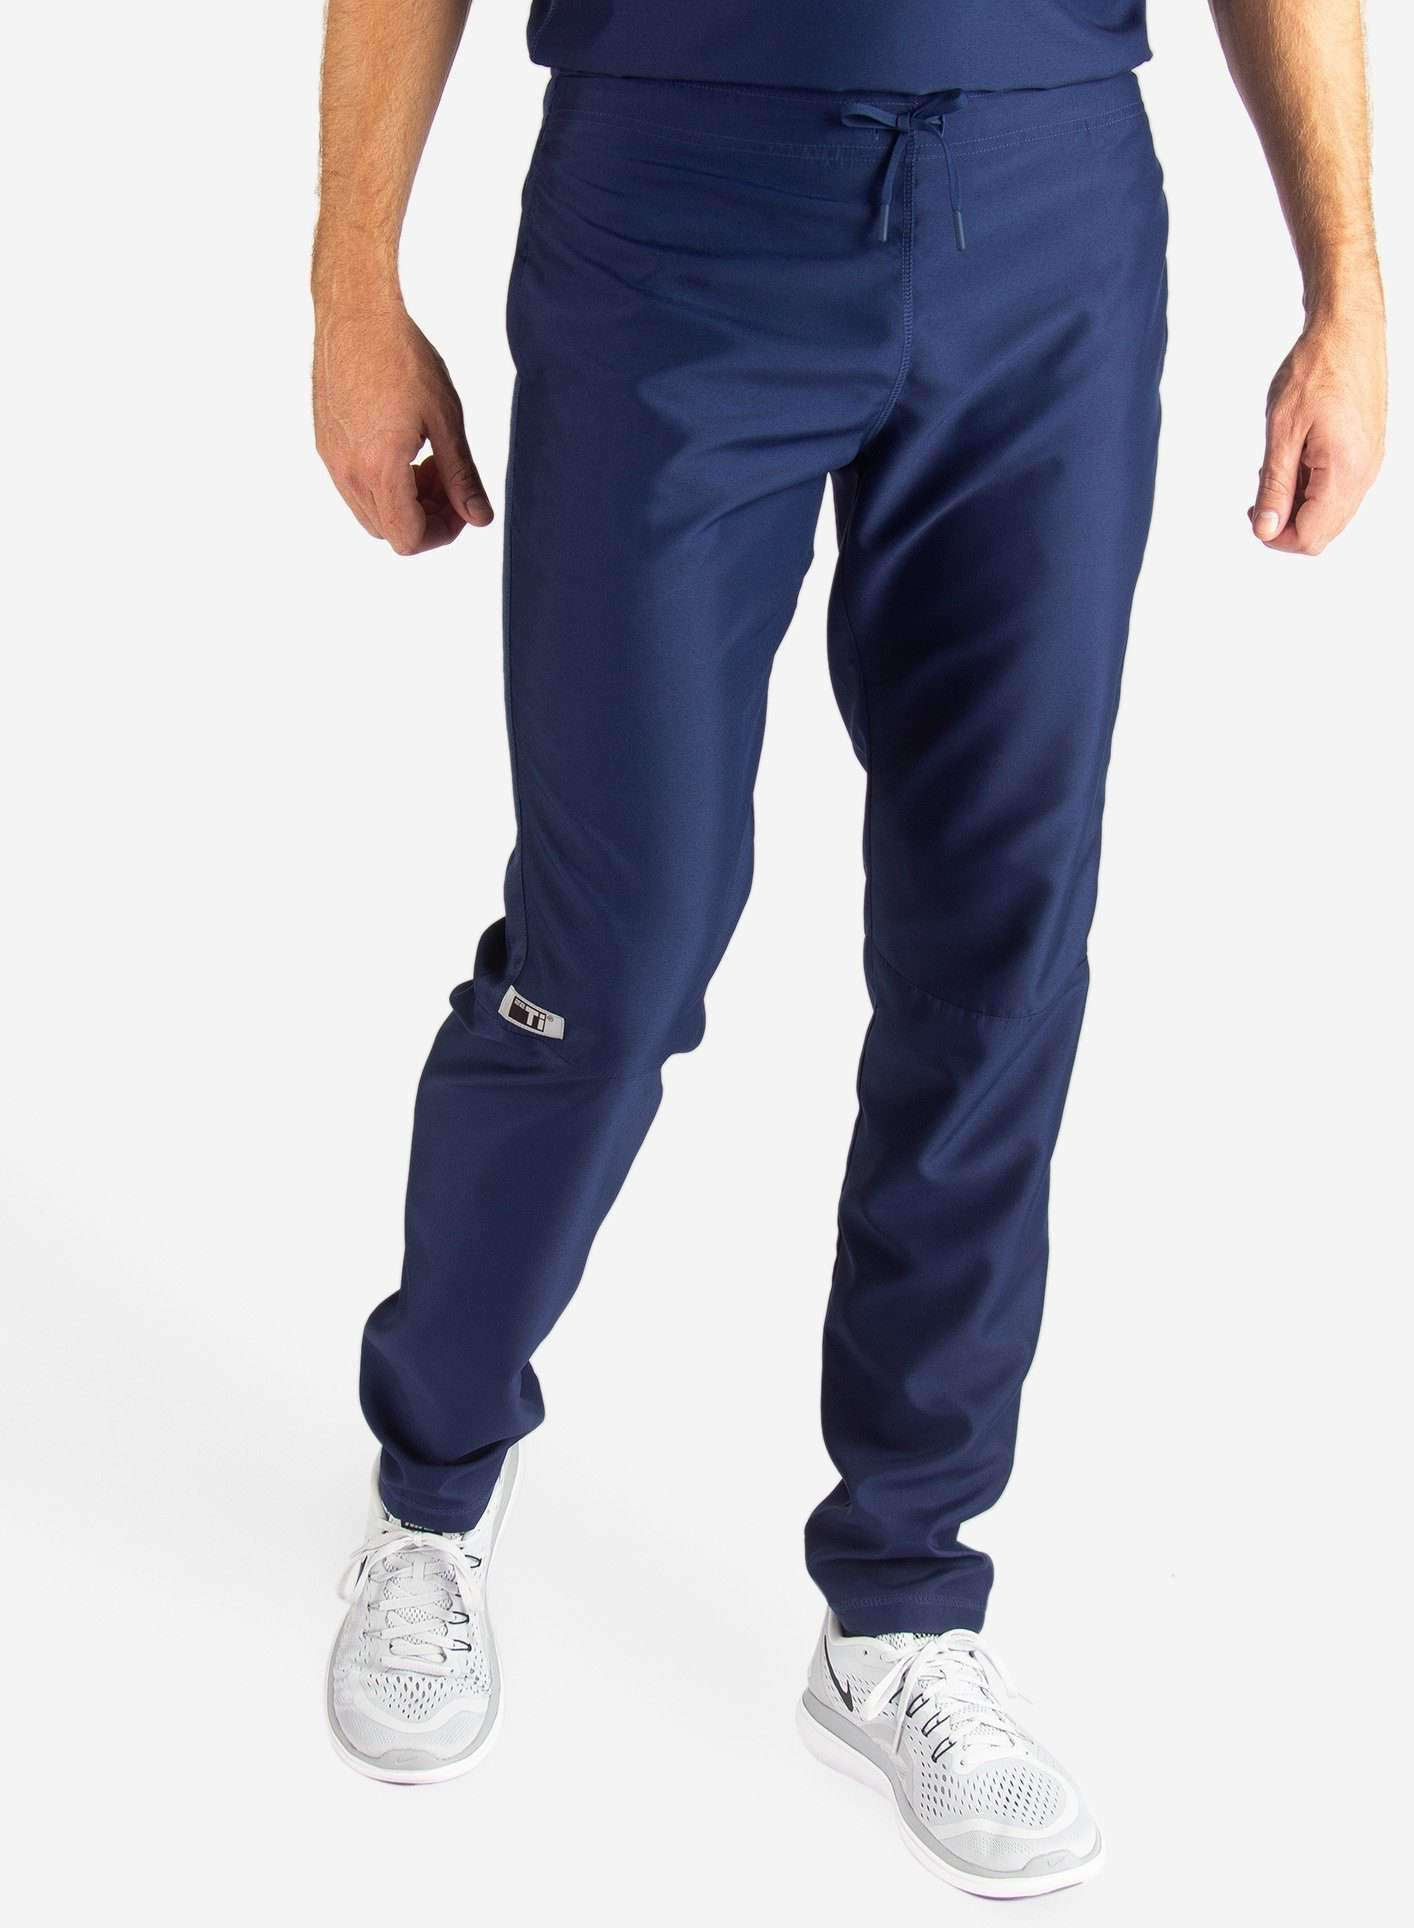 Men's Slim Fit Scrub Pants in Navy Blue